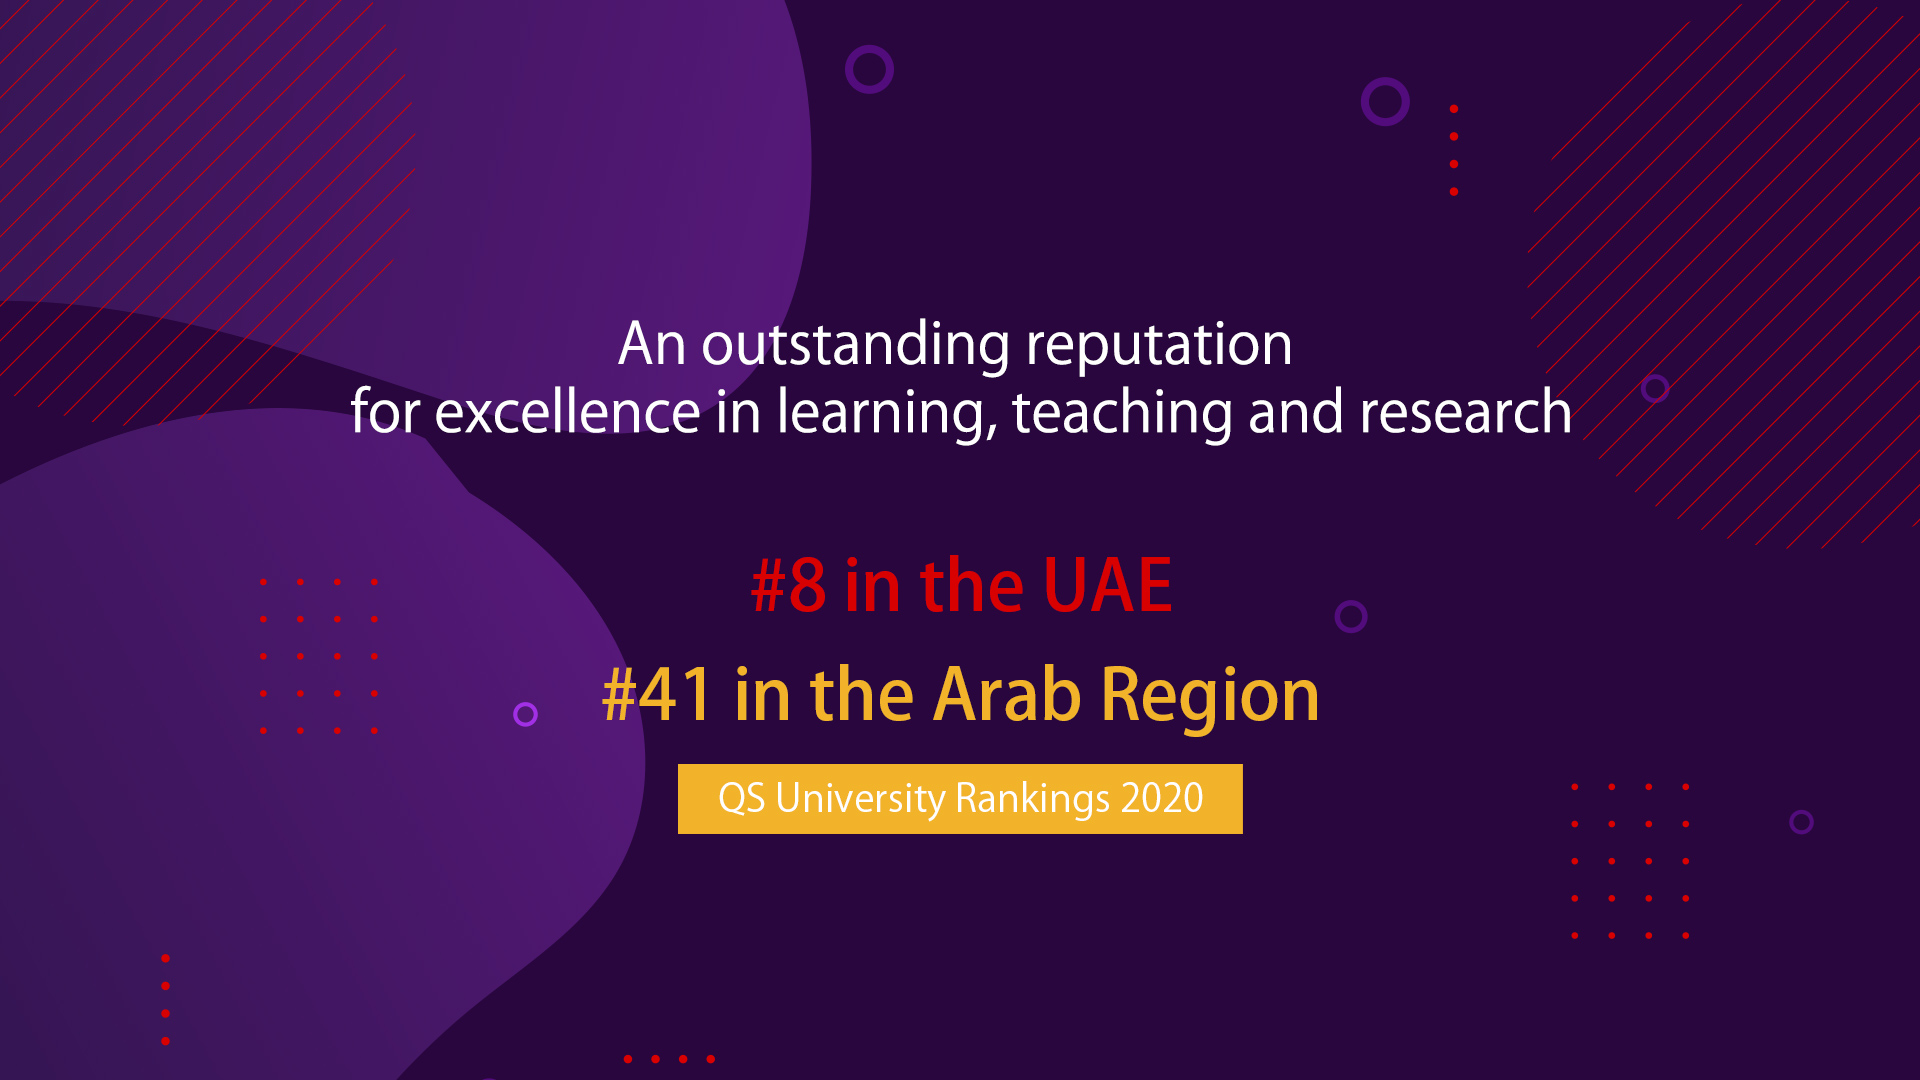 QS Ranking 41st of Top 50 Arab Region Universities - with info